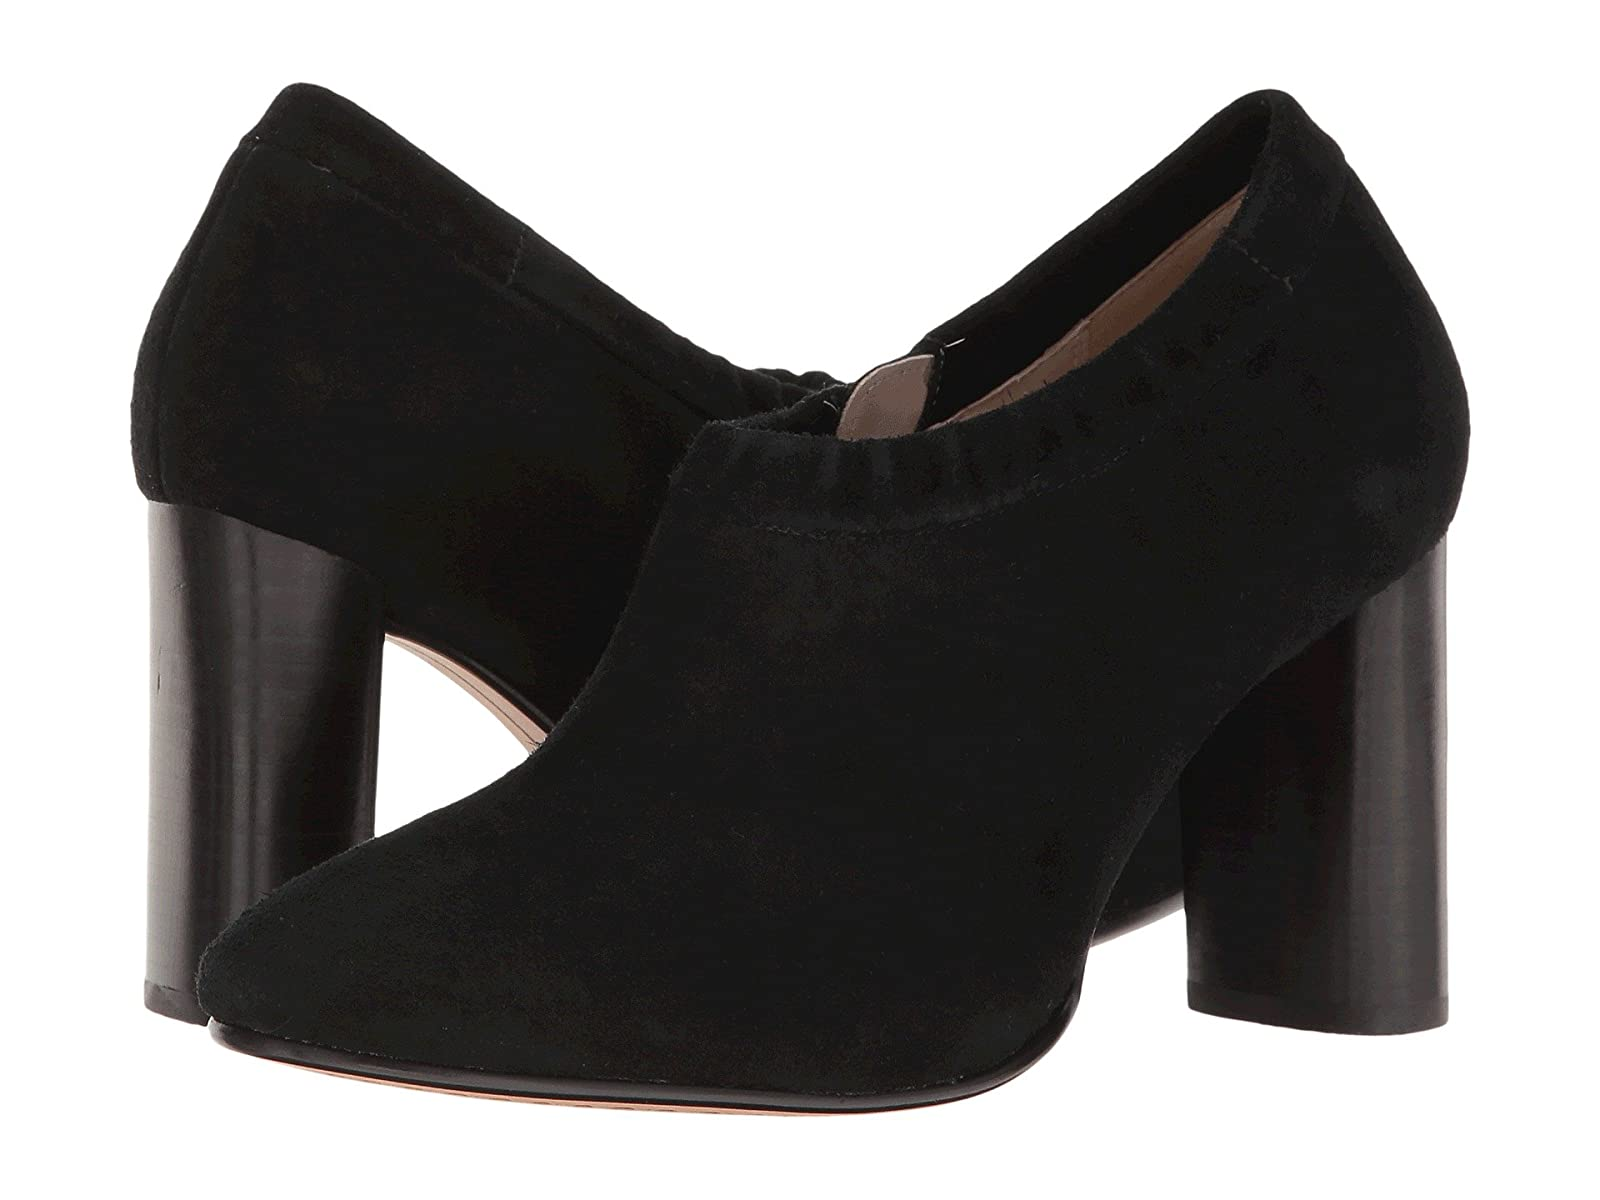 Clarks Grace LolaCheap and distinctive eye-catching shoes